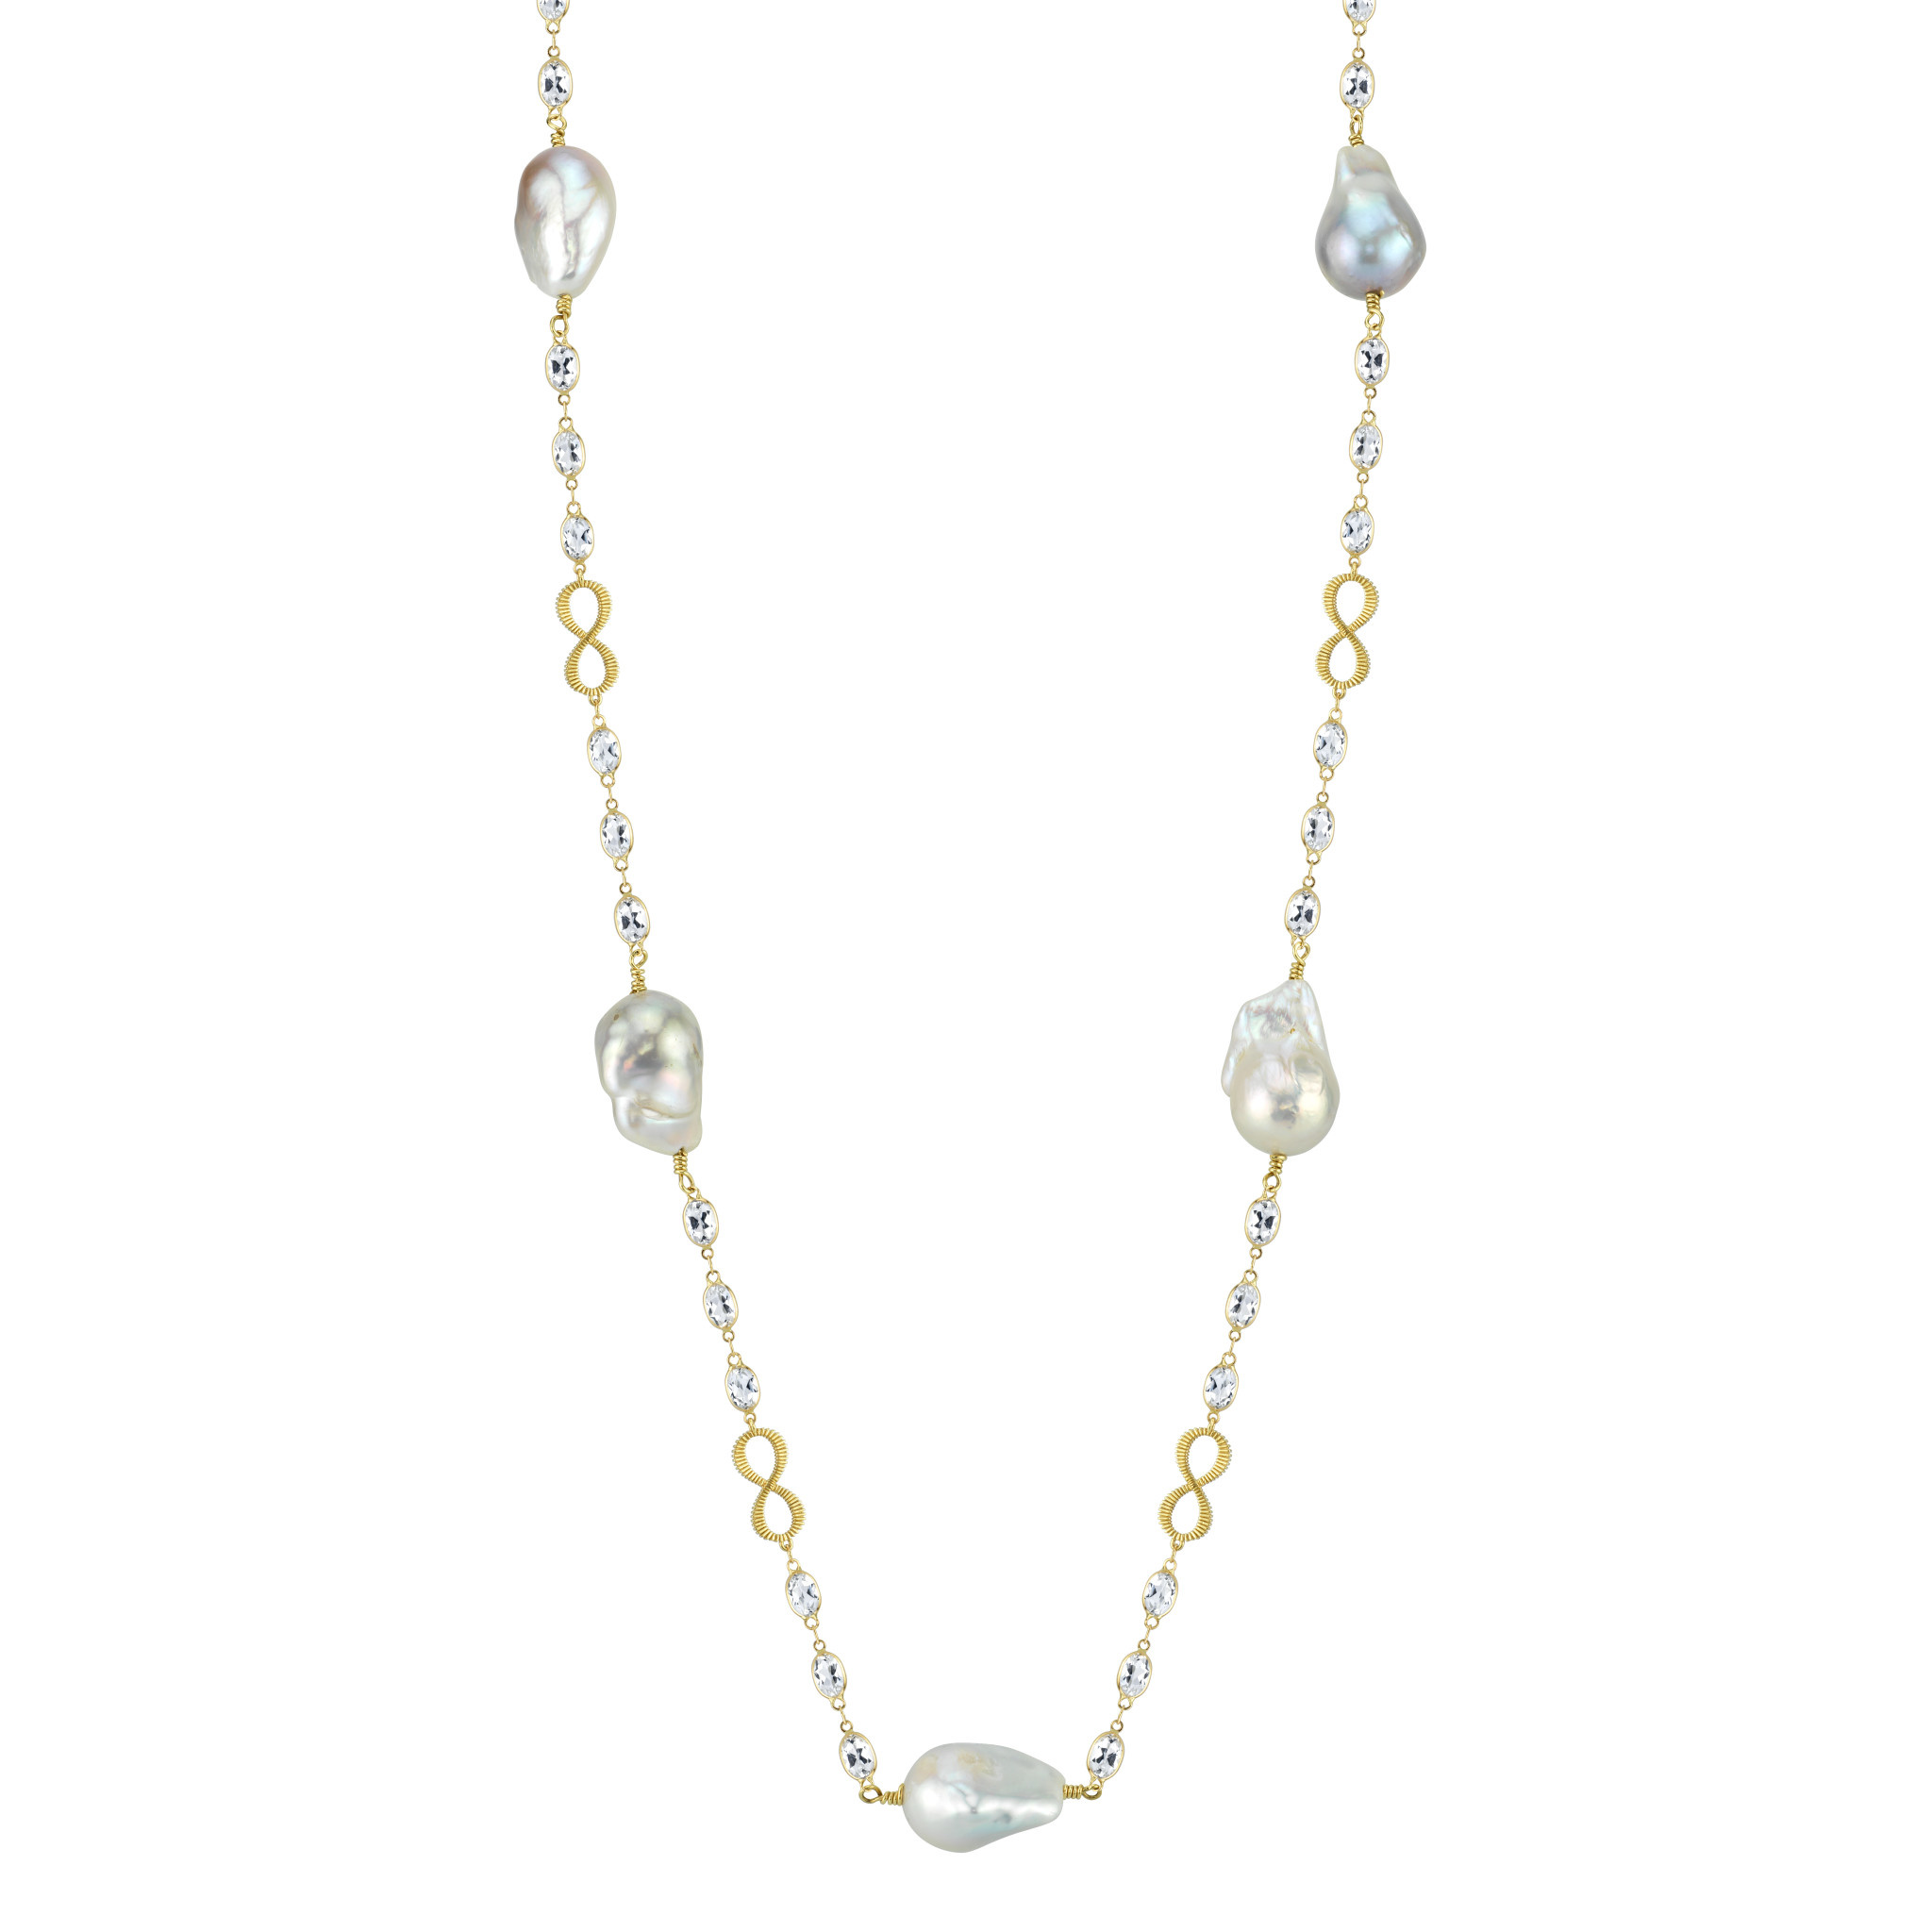 White Topaz Infinity Chain with Baroque Pearls